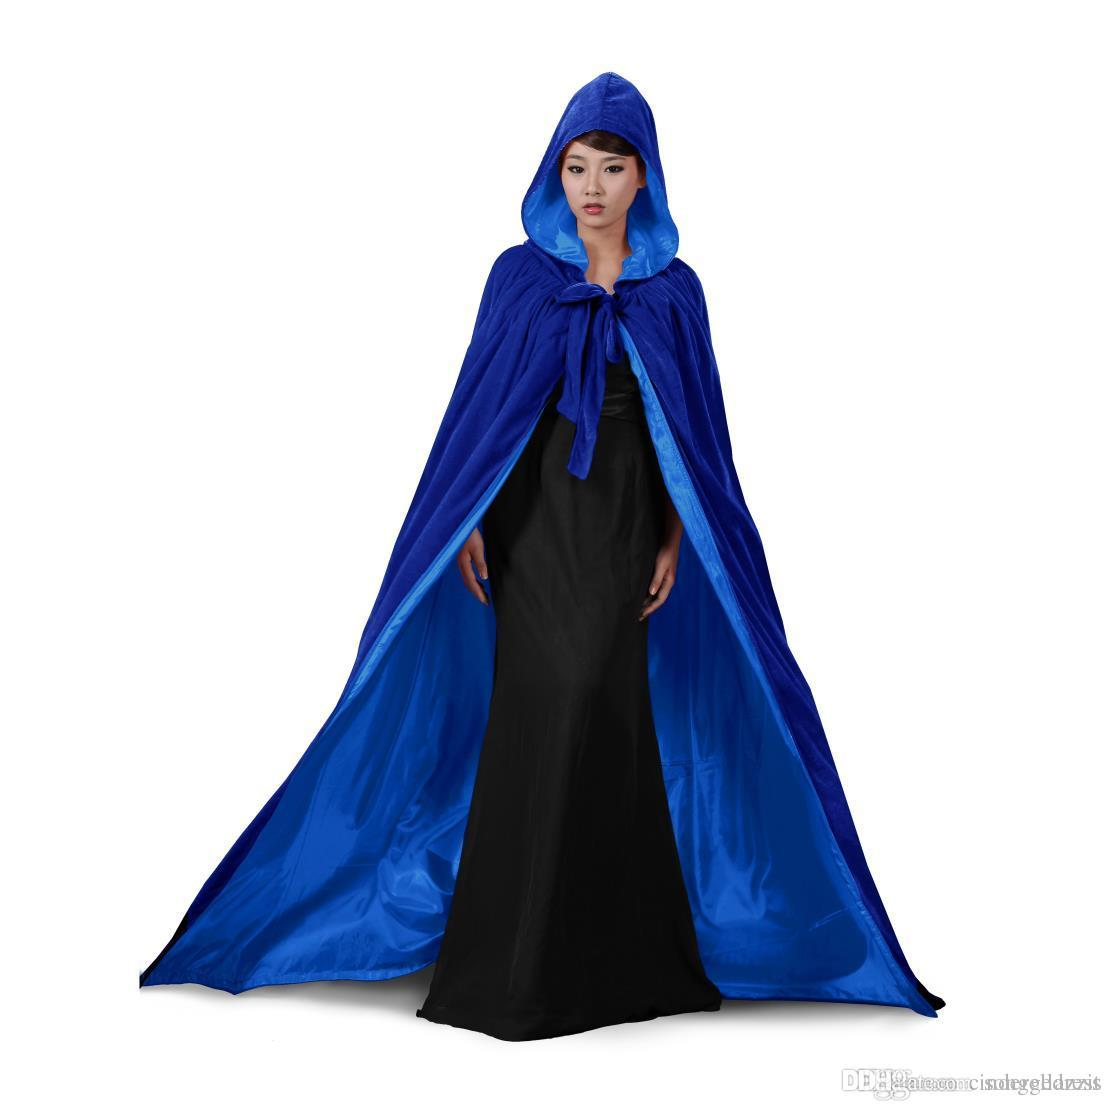 Blue And 10 Colour Lining Hooded Velvet Cloak Gothic Wicca Robe Medieval  Witchcraft Larp Cape Hooded Vampire Cape Halloween Party Cloak Cloaks Cape  Wedding ... f2f0aaebd768